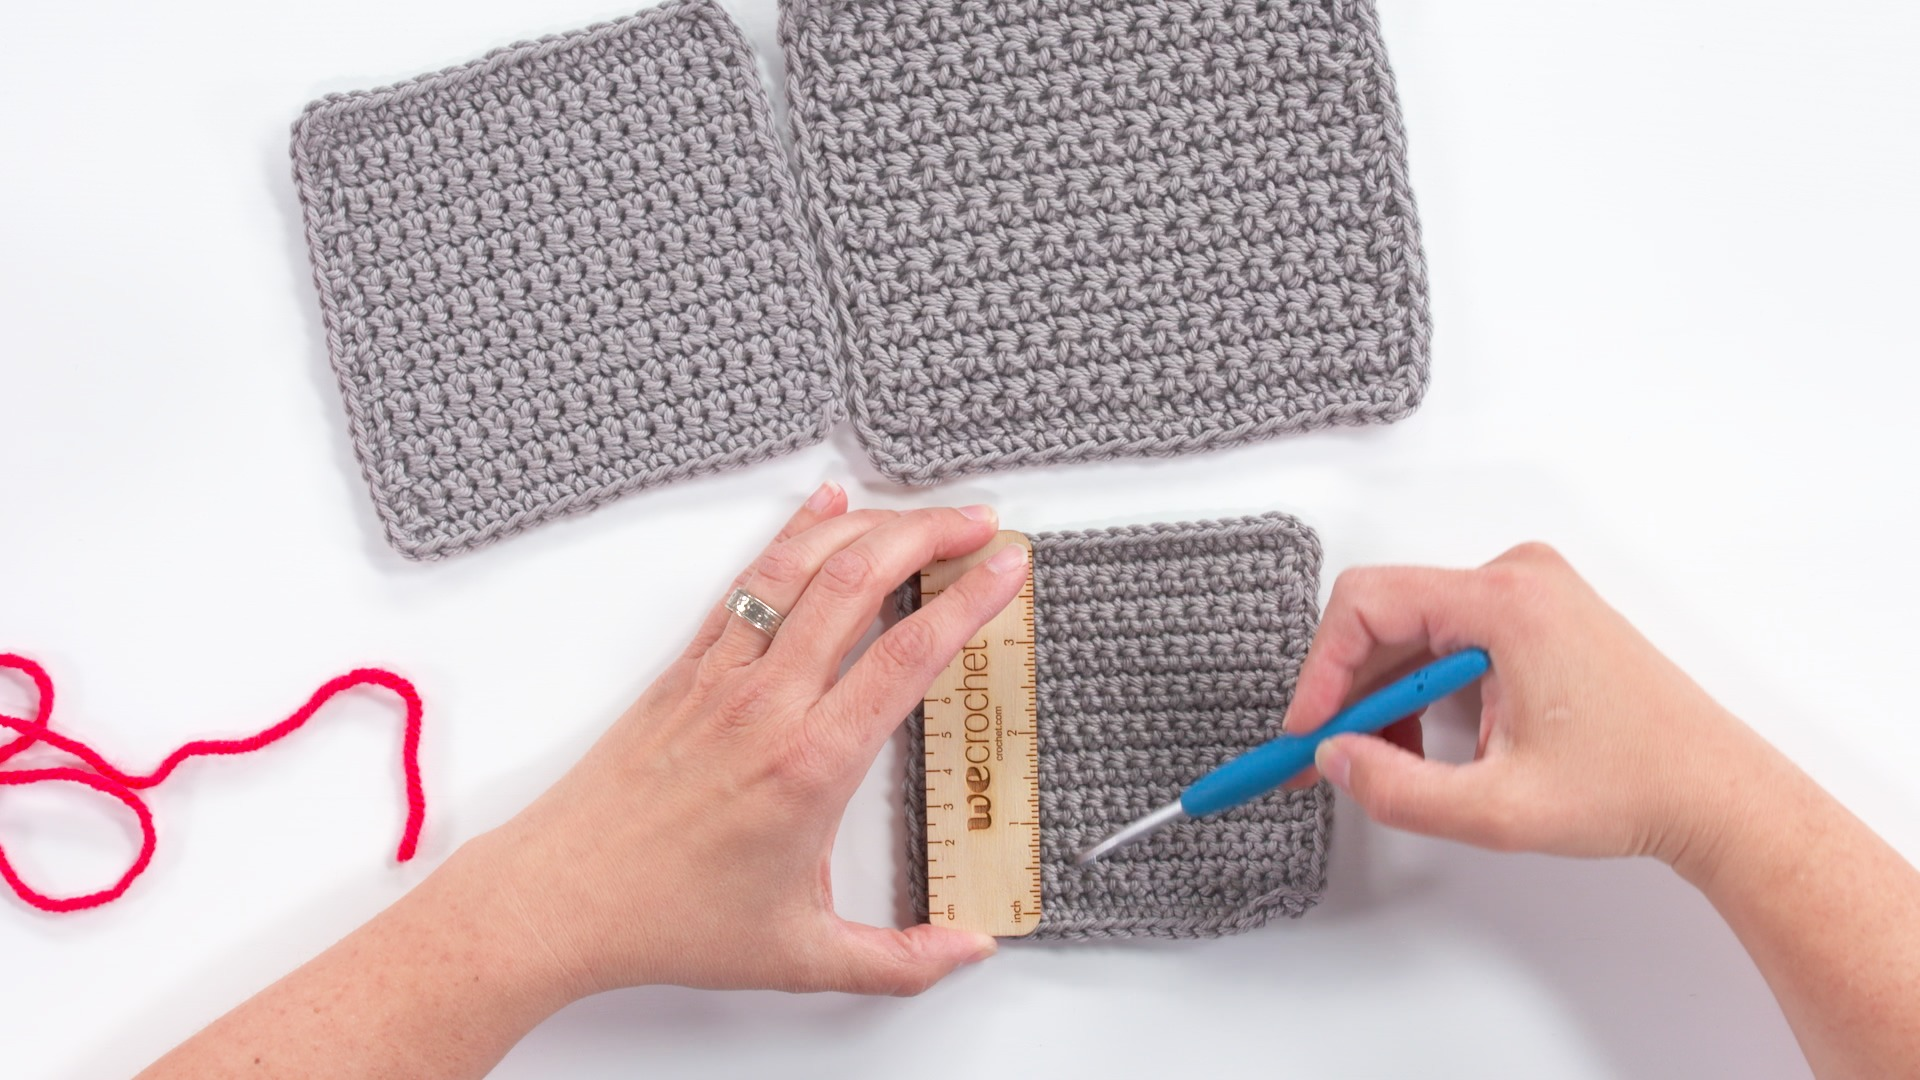 14-Day Learn to Crochet Series: Day 4